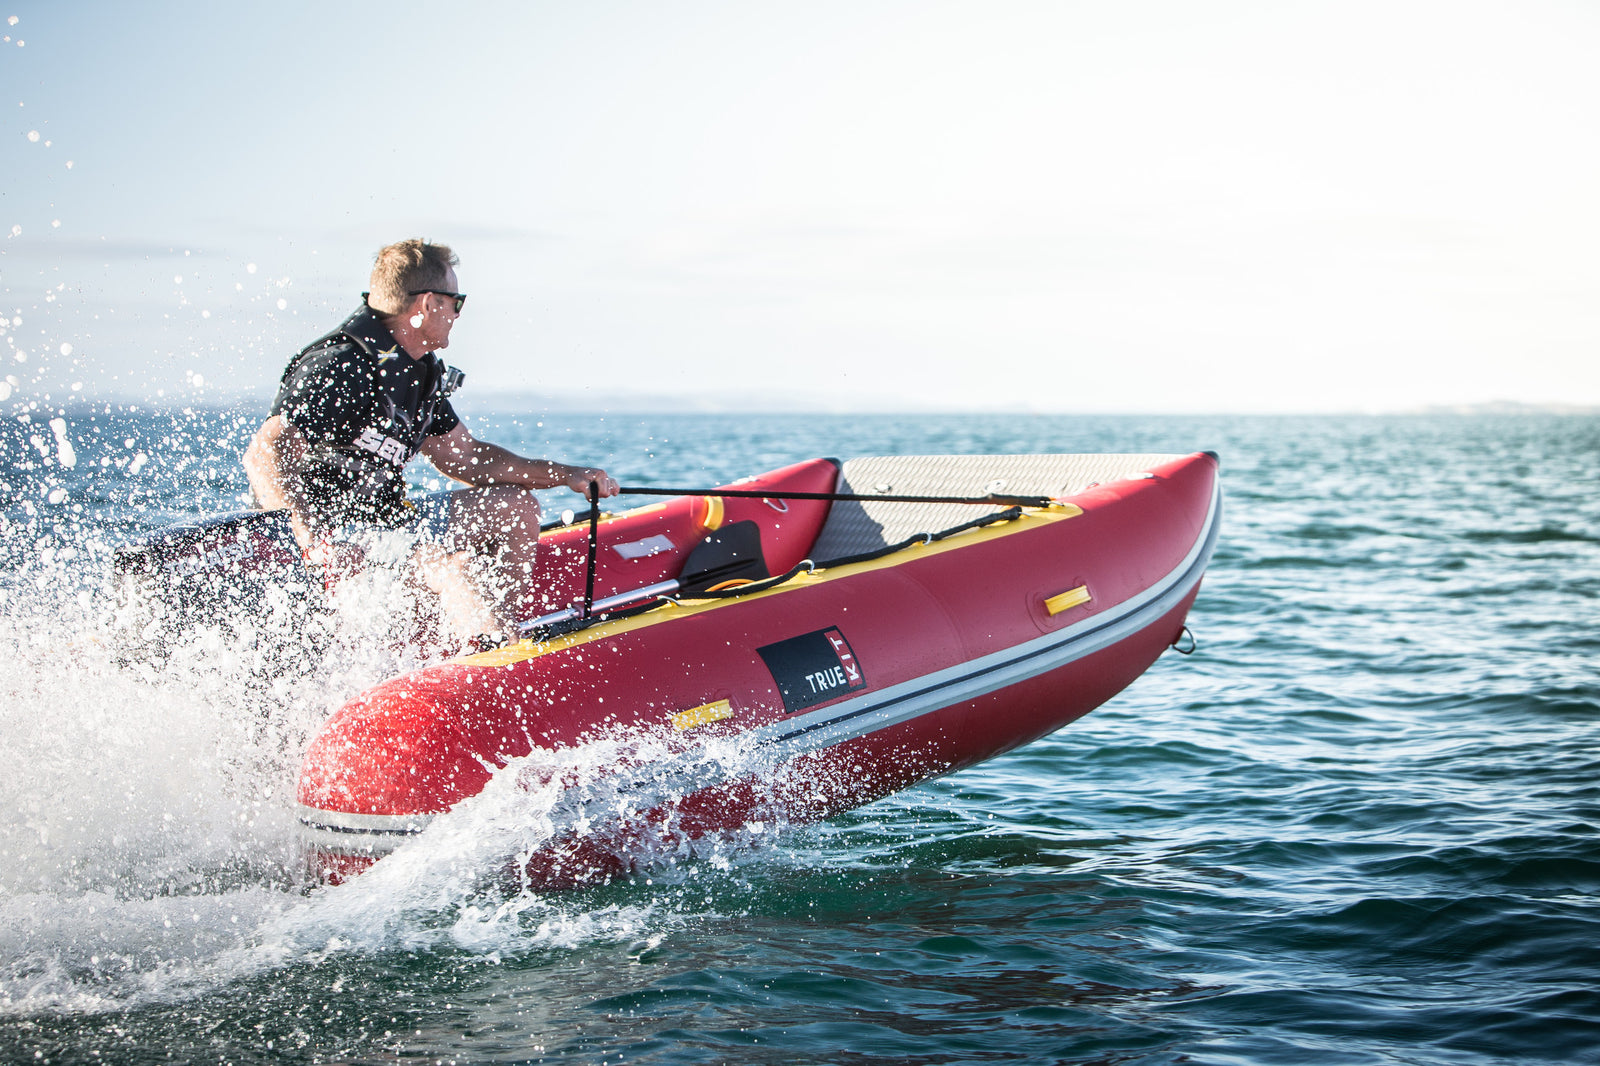 True Kit Discovery - inflatable catamarans are fast, lightweight and portable